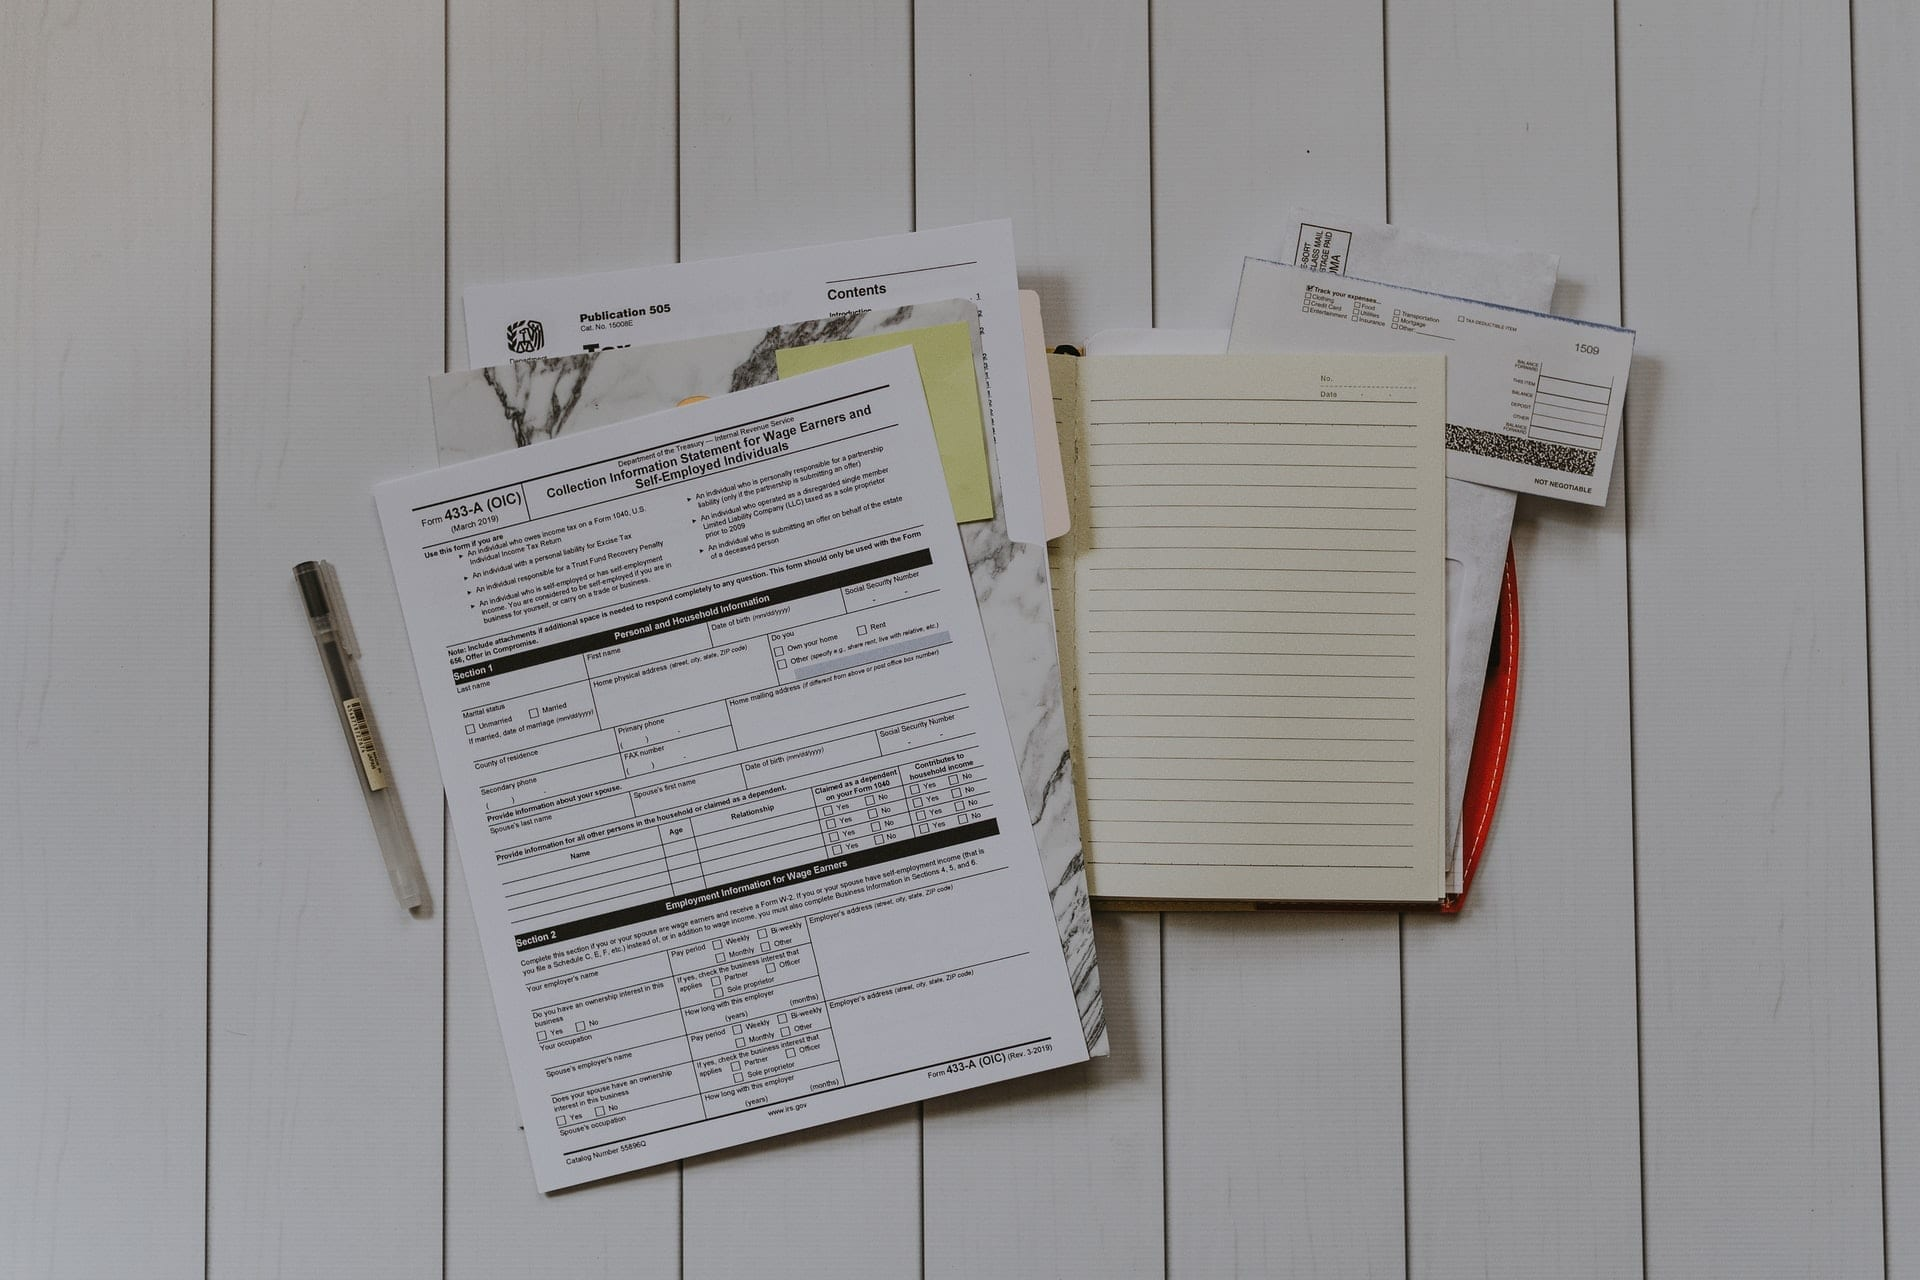 There are some things you need to be aware of when filing taxes while incarcerated.